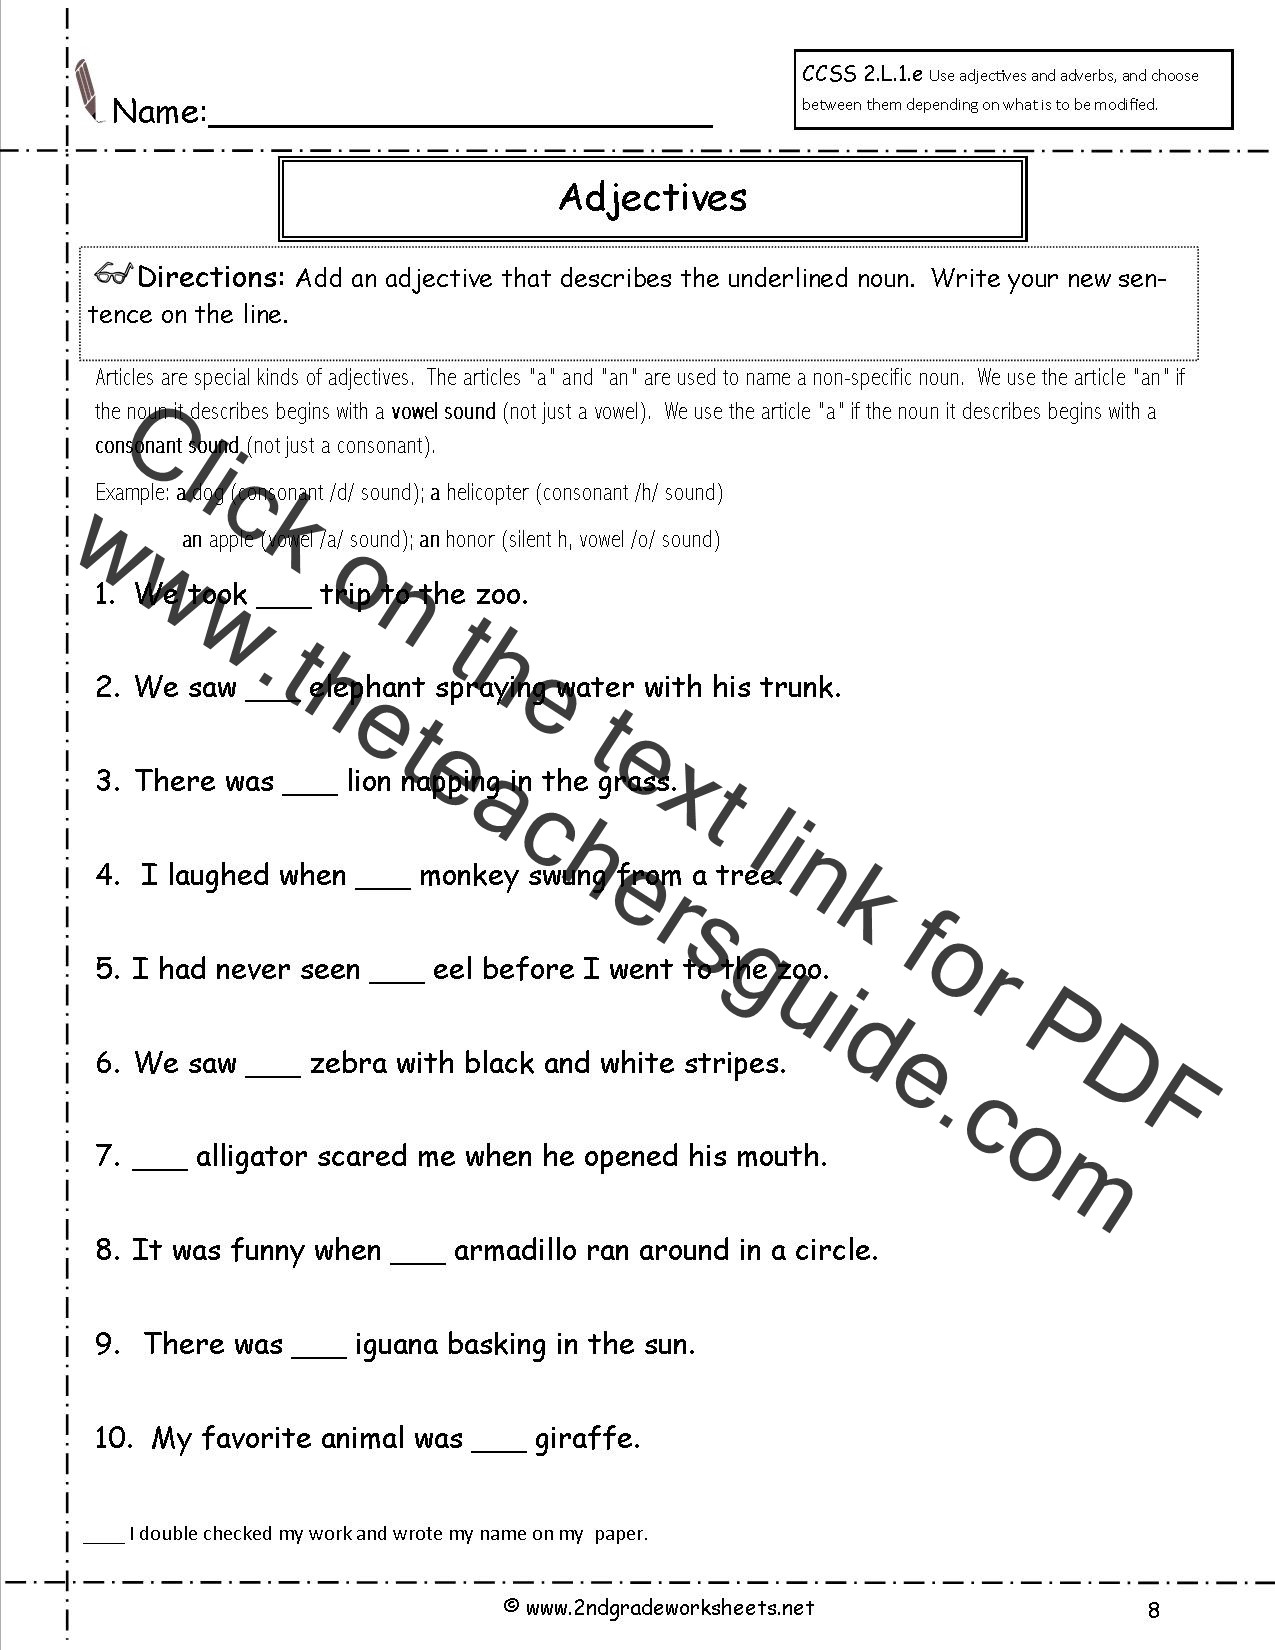 Third Grade Grammar Worksheets Free Language Grammar Worksheets and Printouts